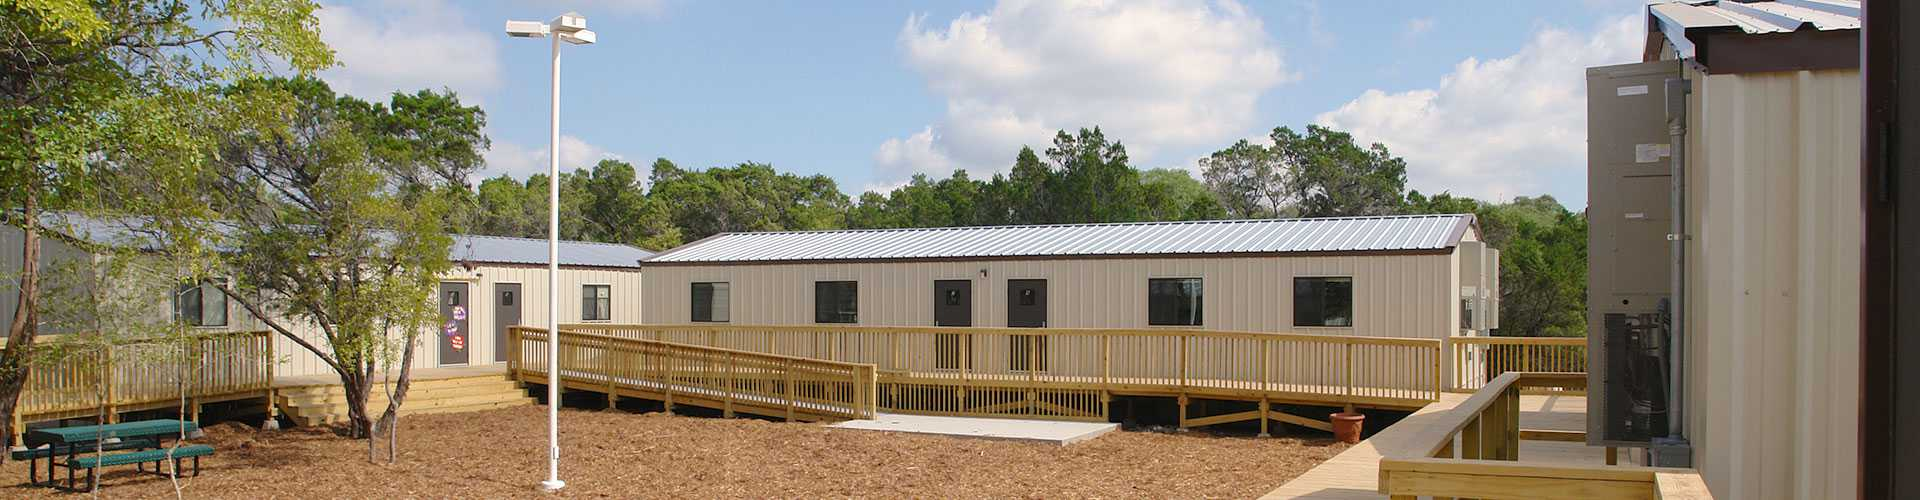 Modular Classroom For Rent ~ Portable classroom buildings for rent or sale in texas